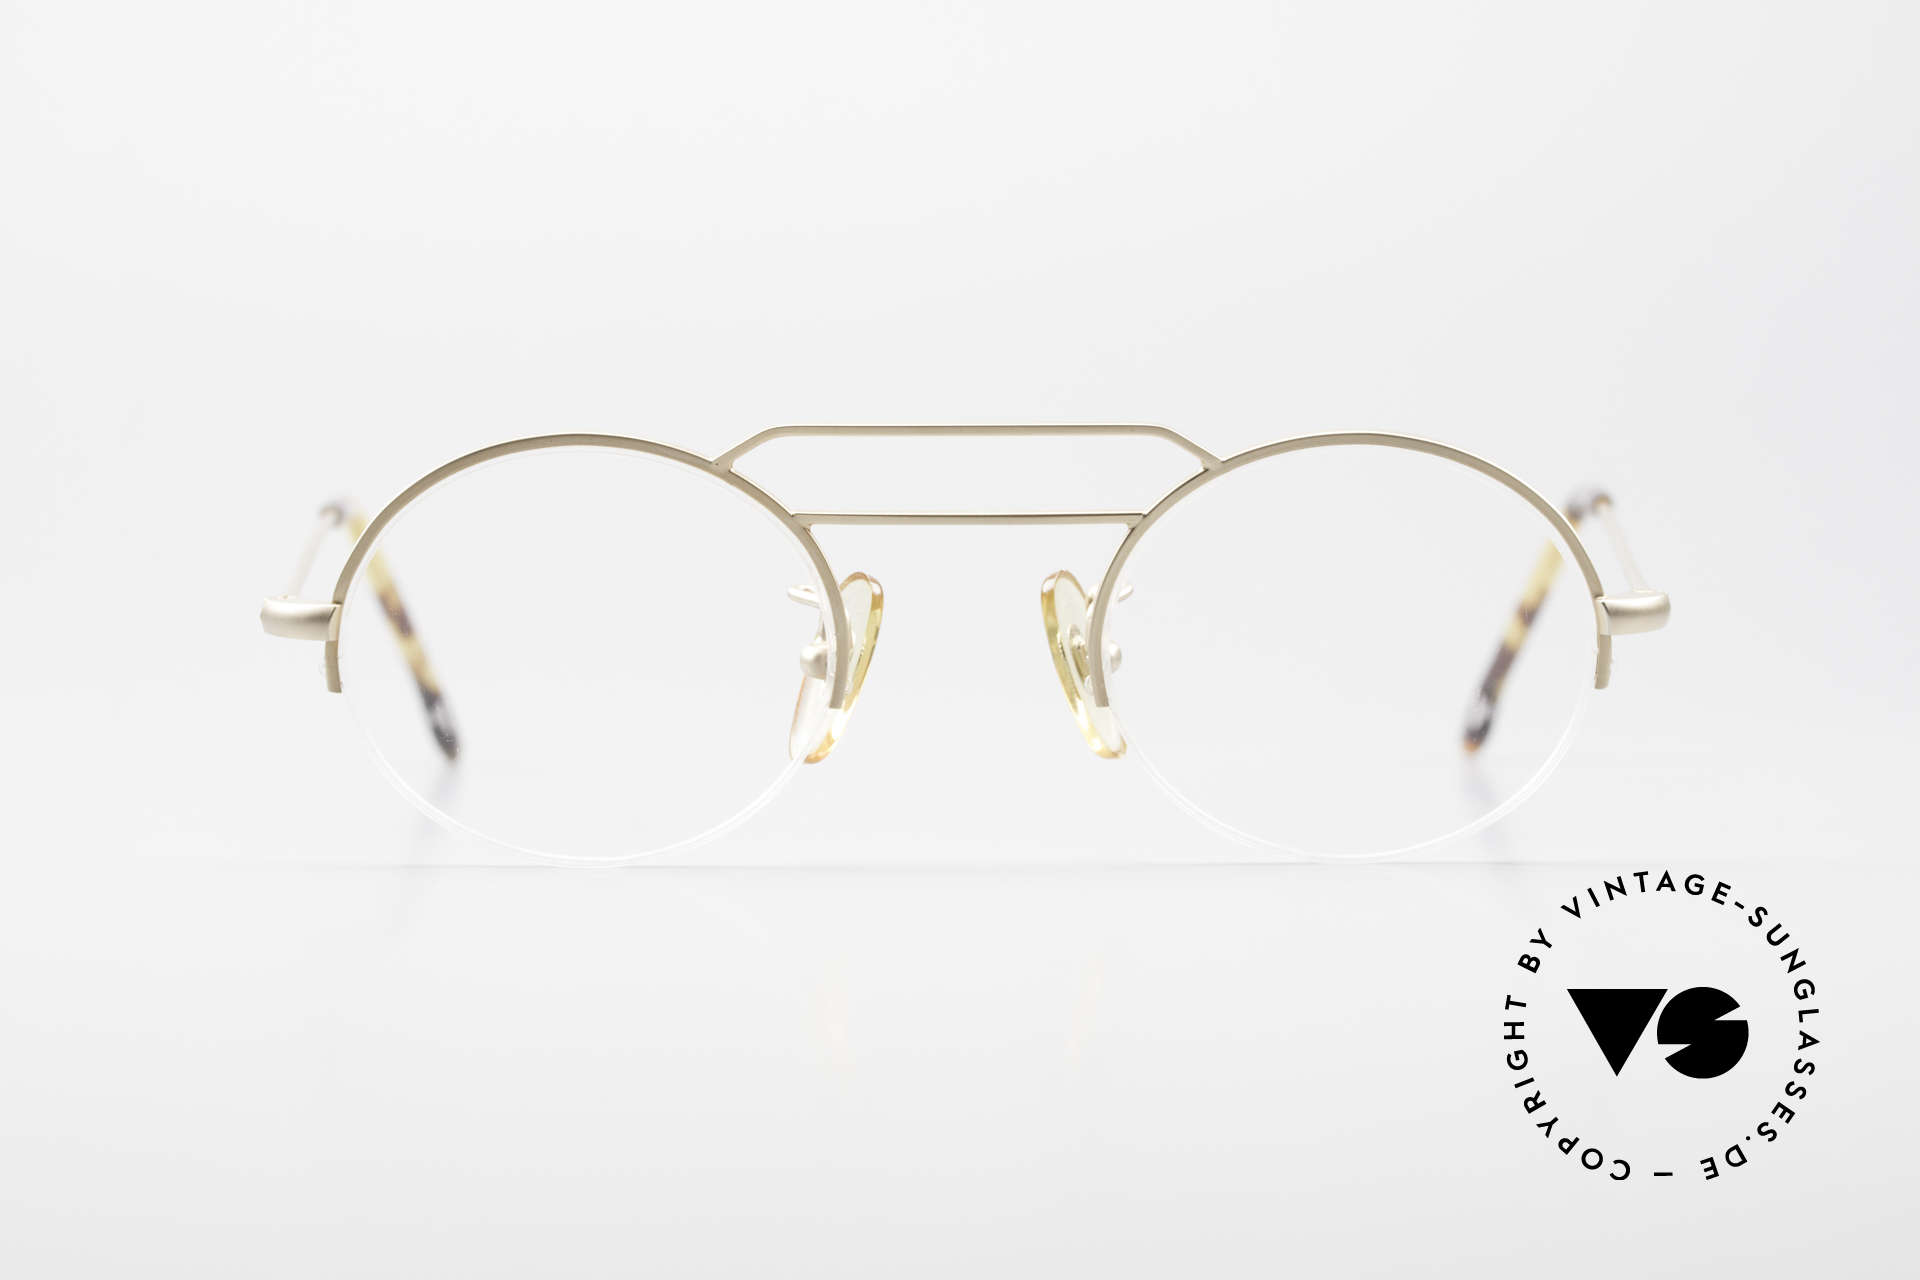 W Proksch's M5/13 90's Semi Rimless Dulled Gold, back then, produced by Wolfgang Proksch himself, Made for Men and Women